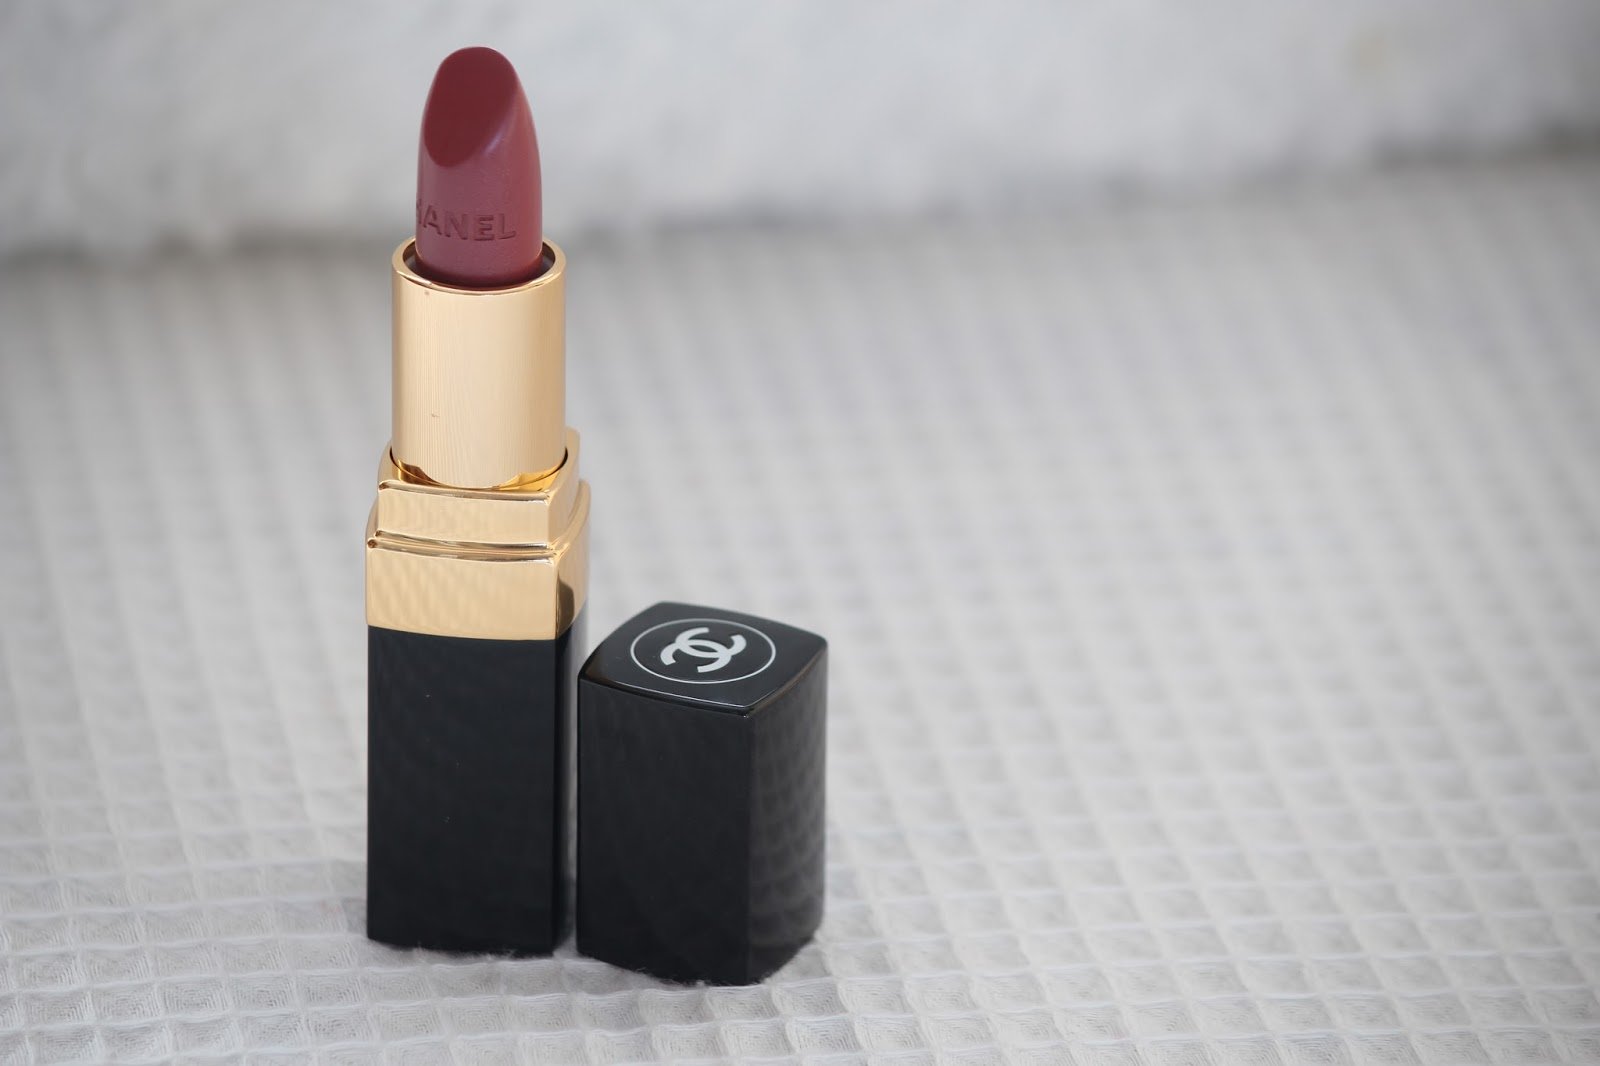 Chanel Lipstick Mac Review is is worth it?